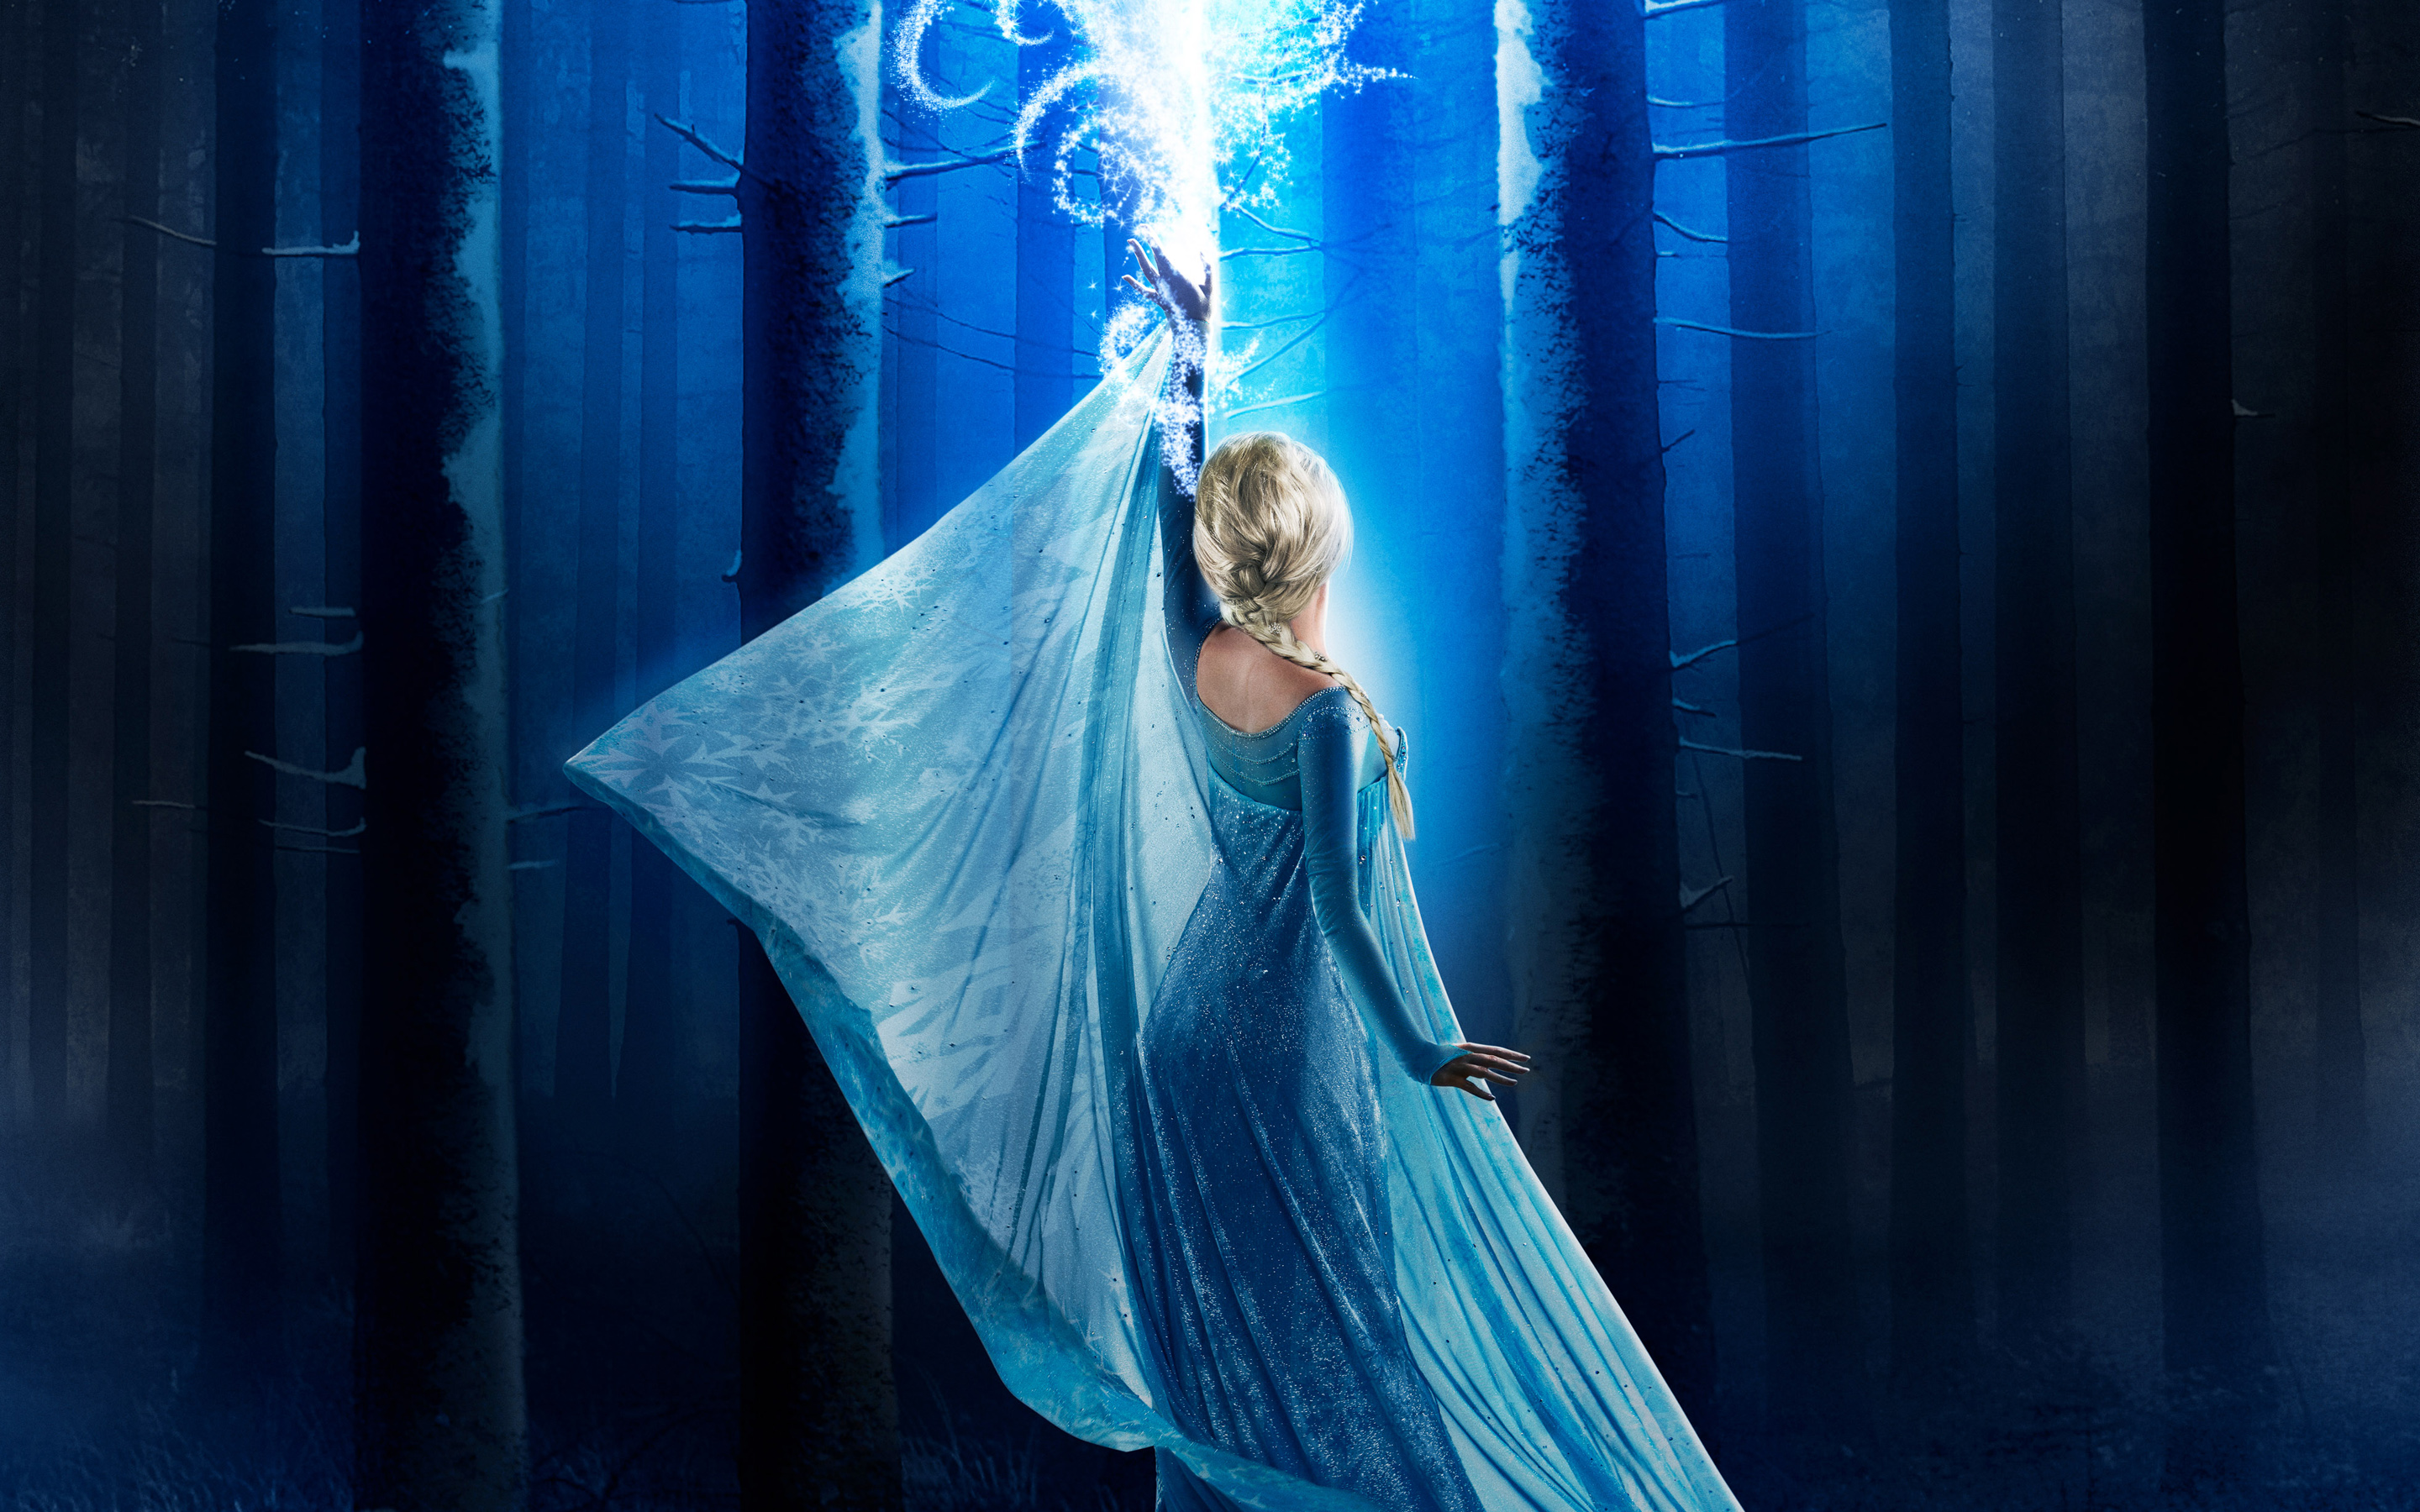 a cinderella story once upon a song download kickass